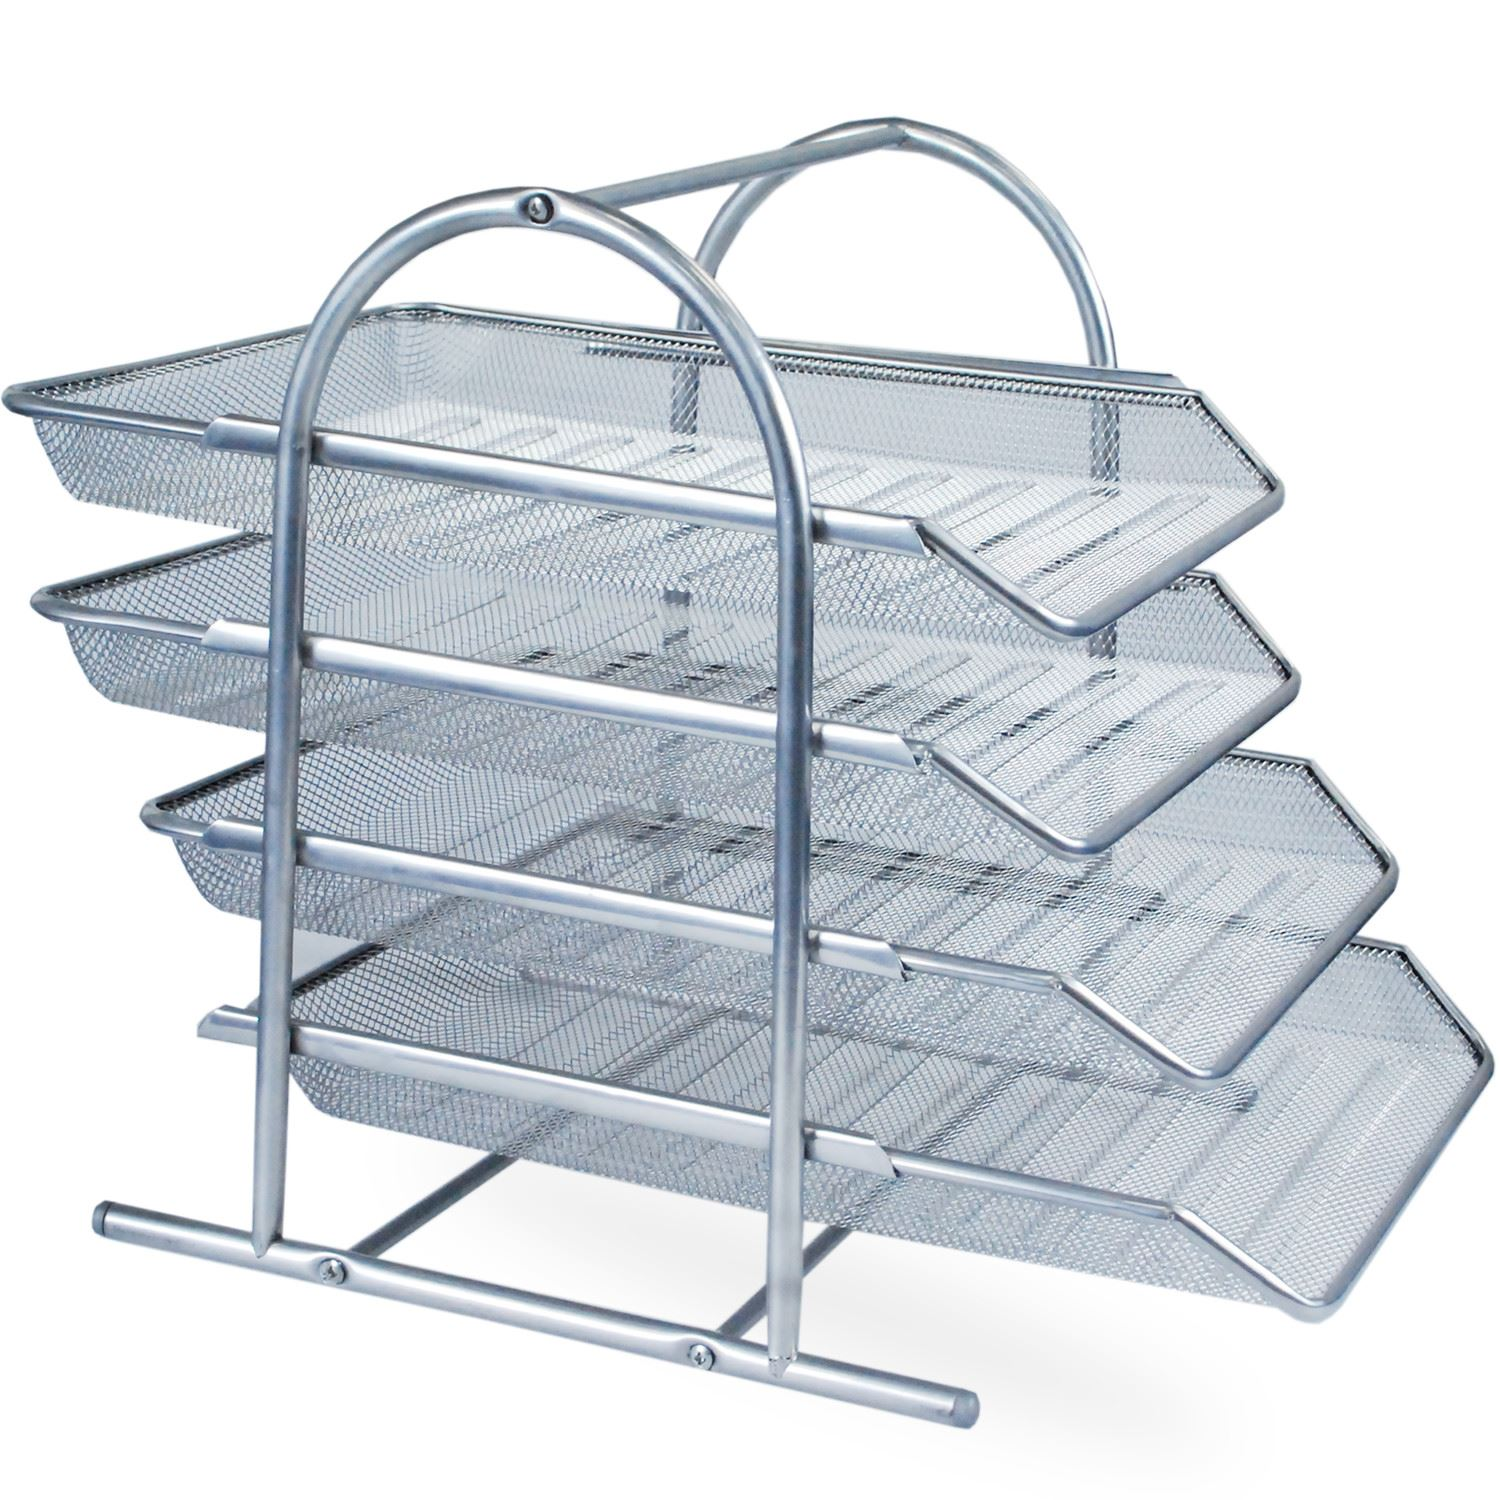 3 4 Tier Office Filing Trays Holder A4 Paper Wire Mesh Storage ...